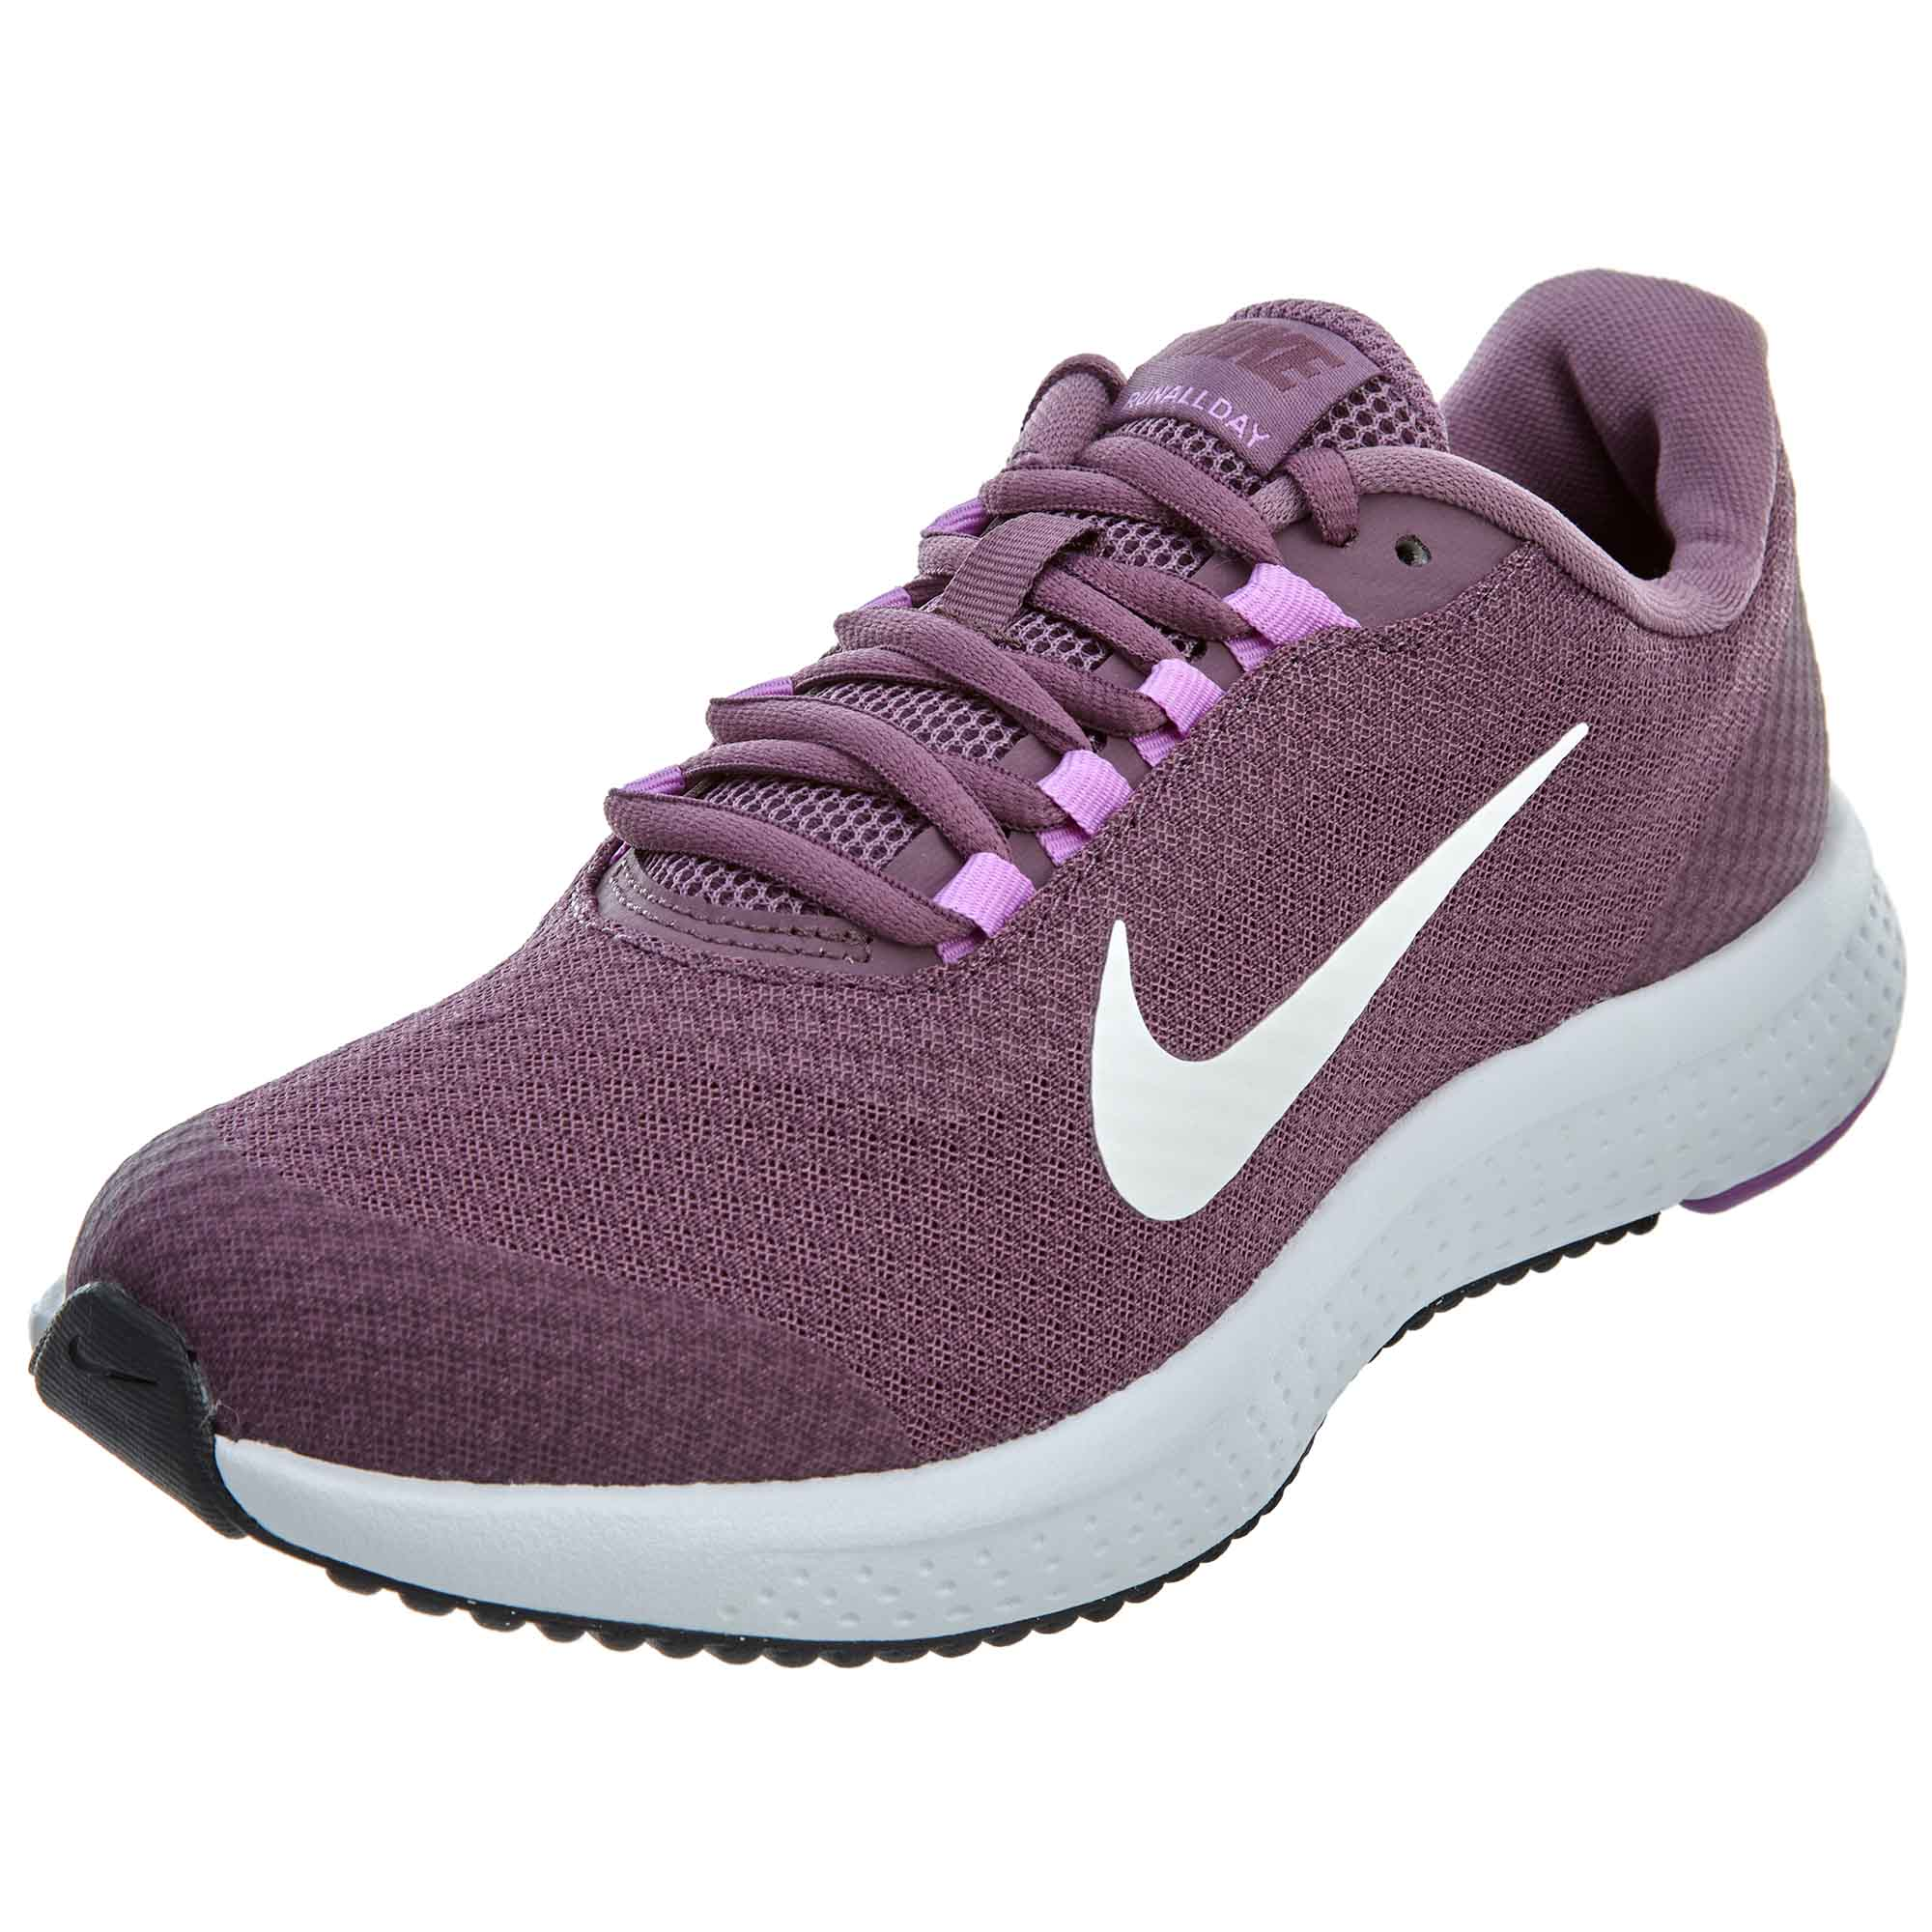 ed0adaa6e57 Details about Nike Womens Run all day Running Shoes 898484-500